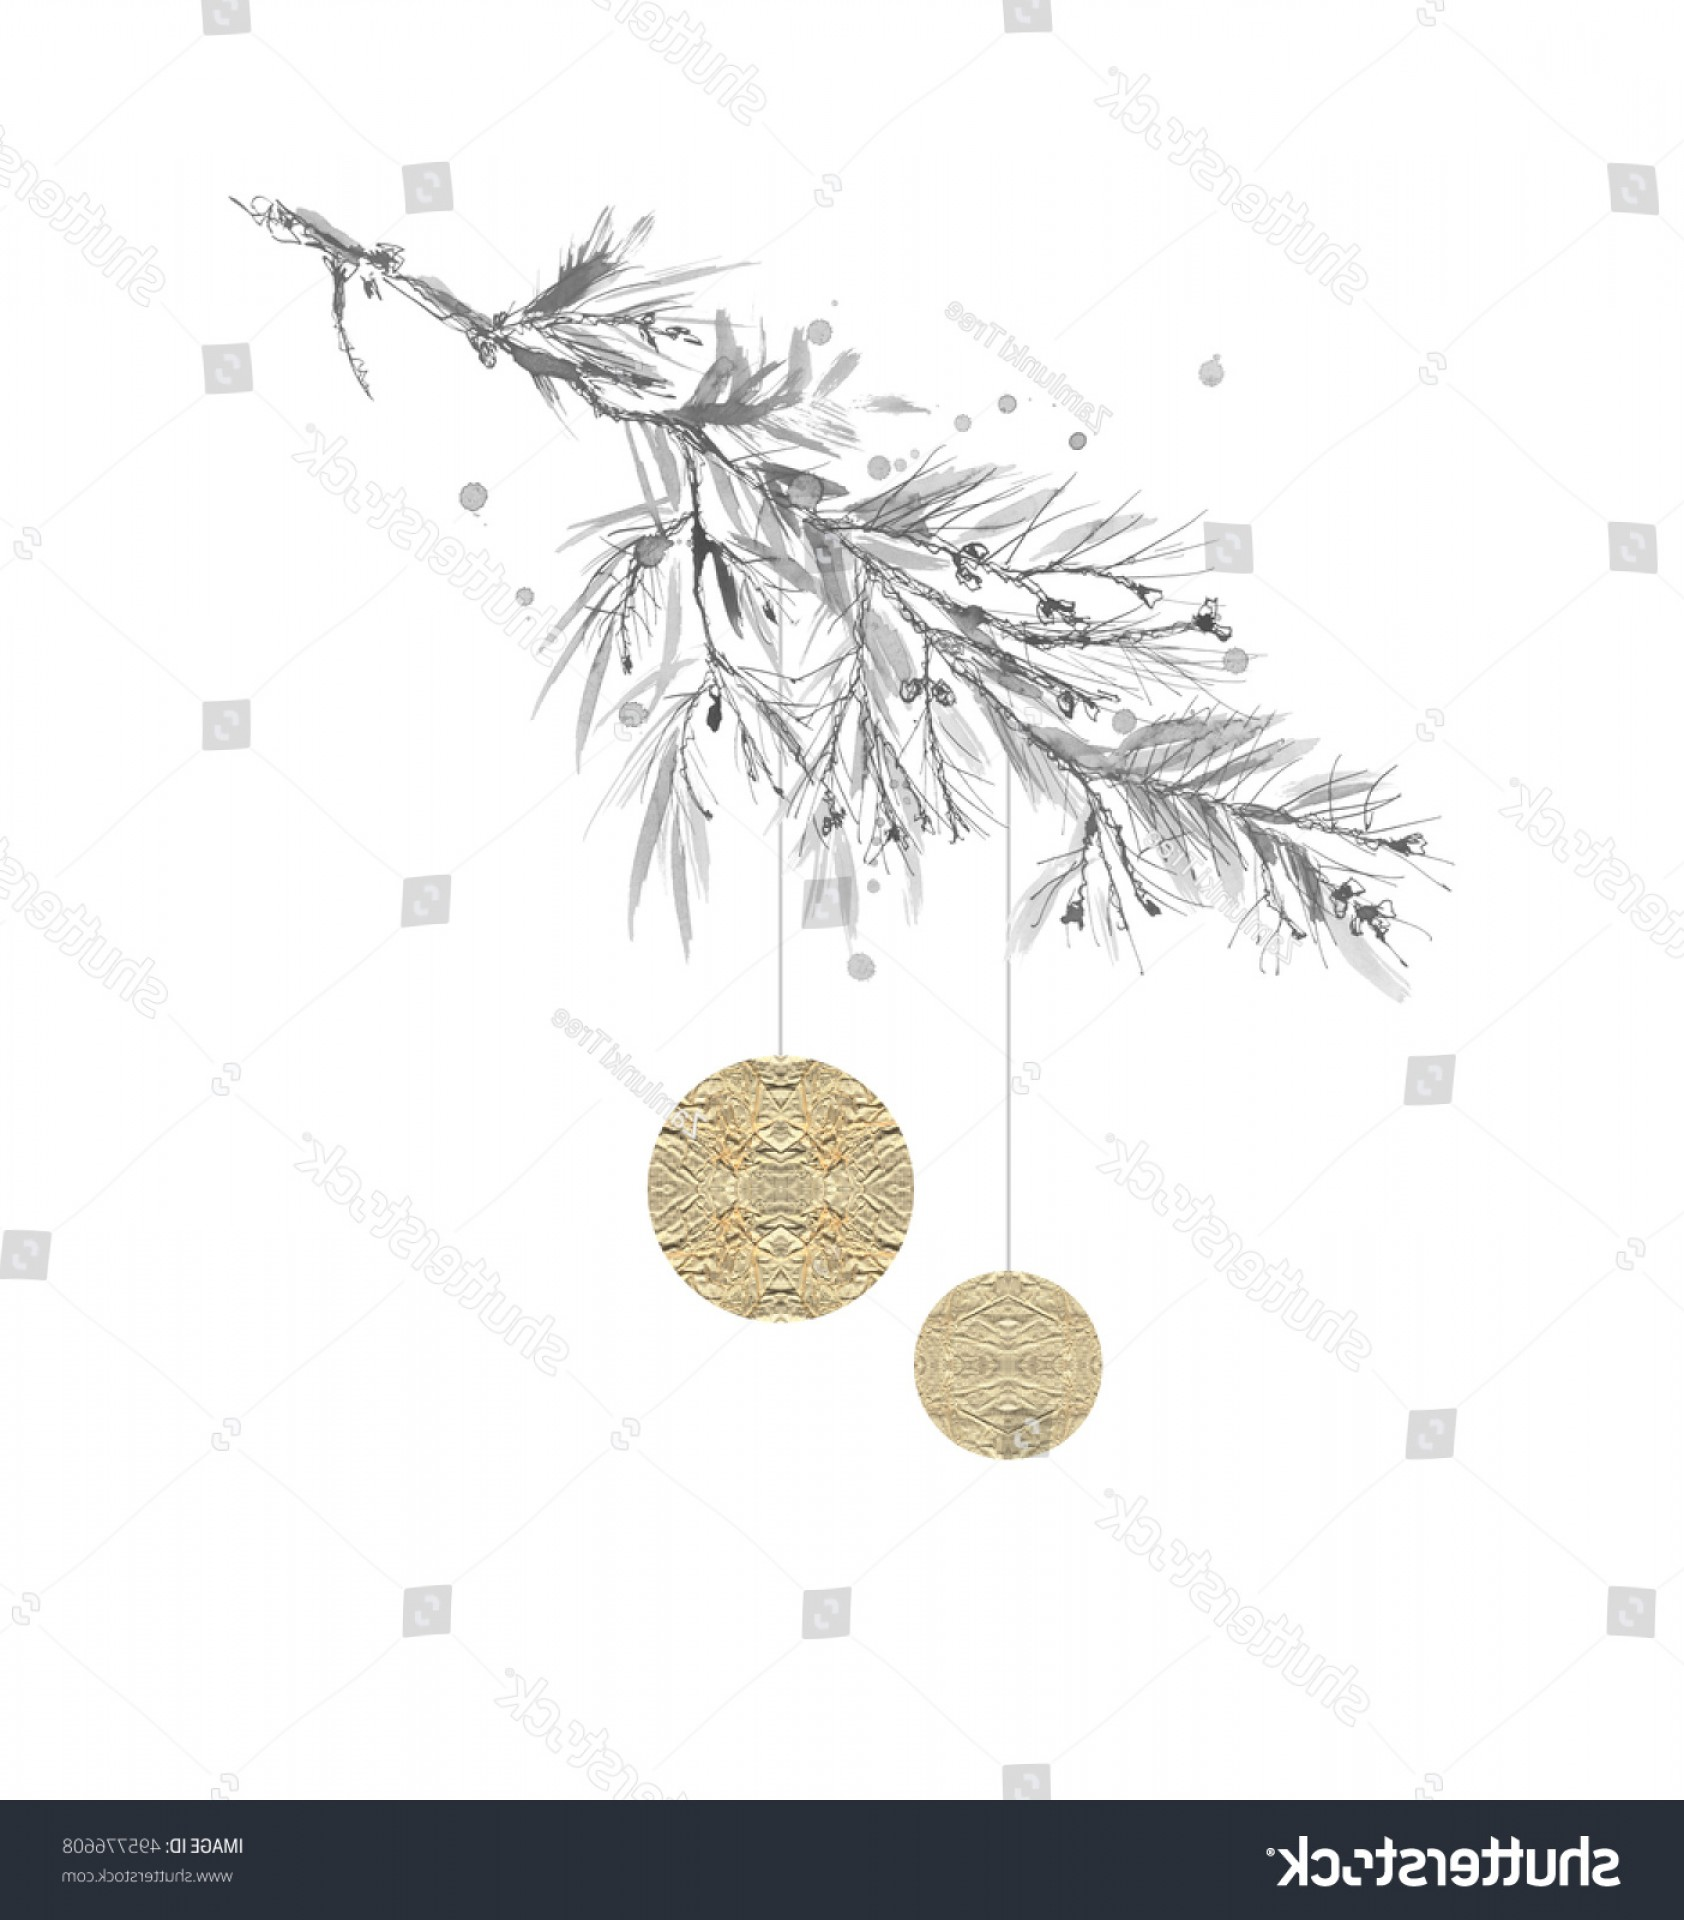 Vector-Based Grayscale Christmas: Grayscale Monochrome Drawing Branch Pine Spruce